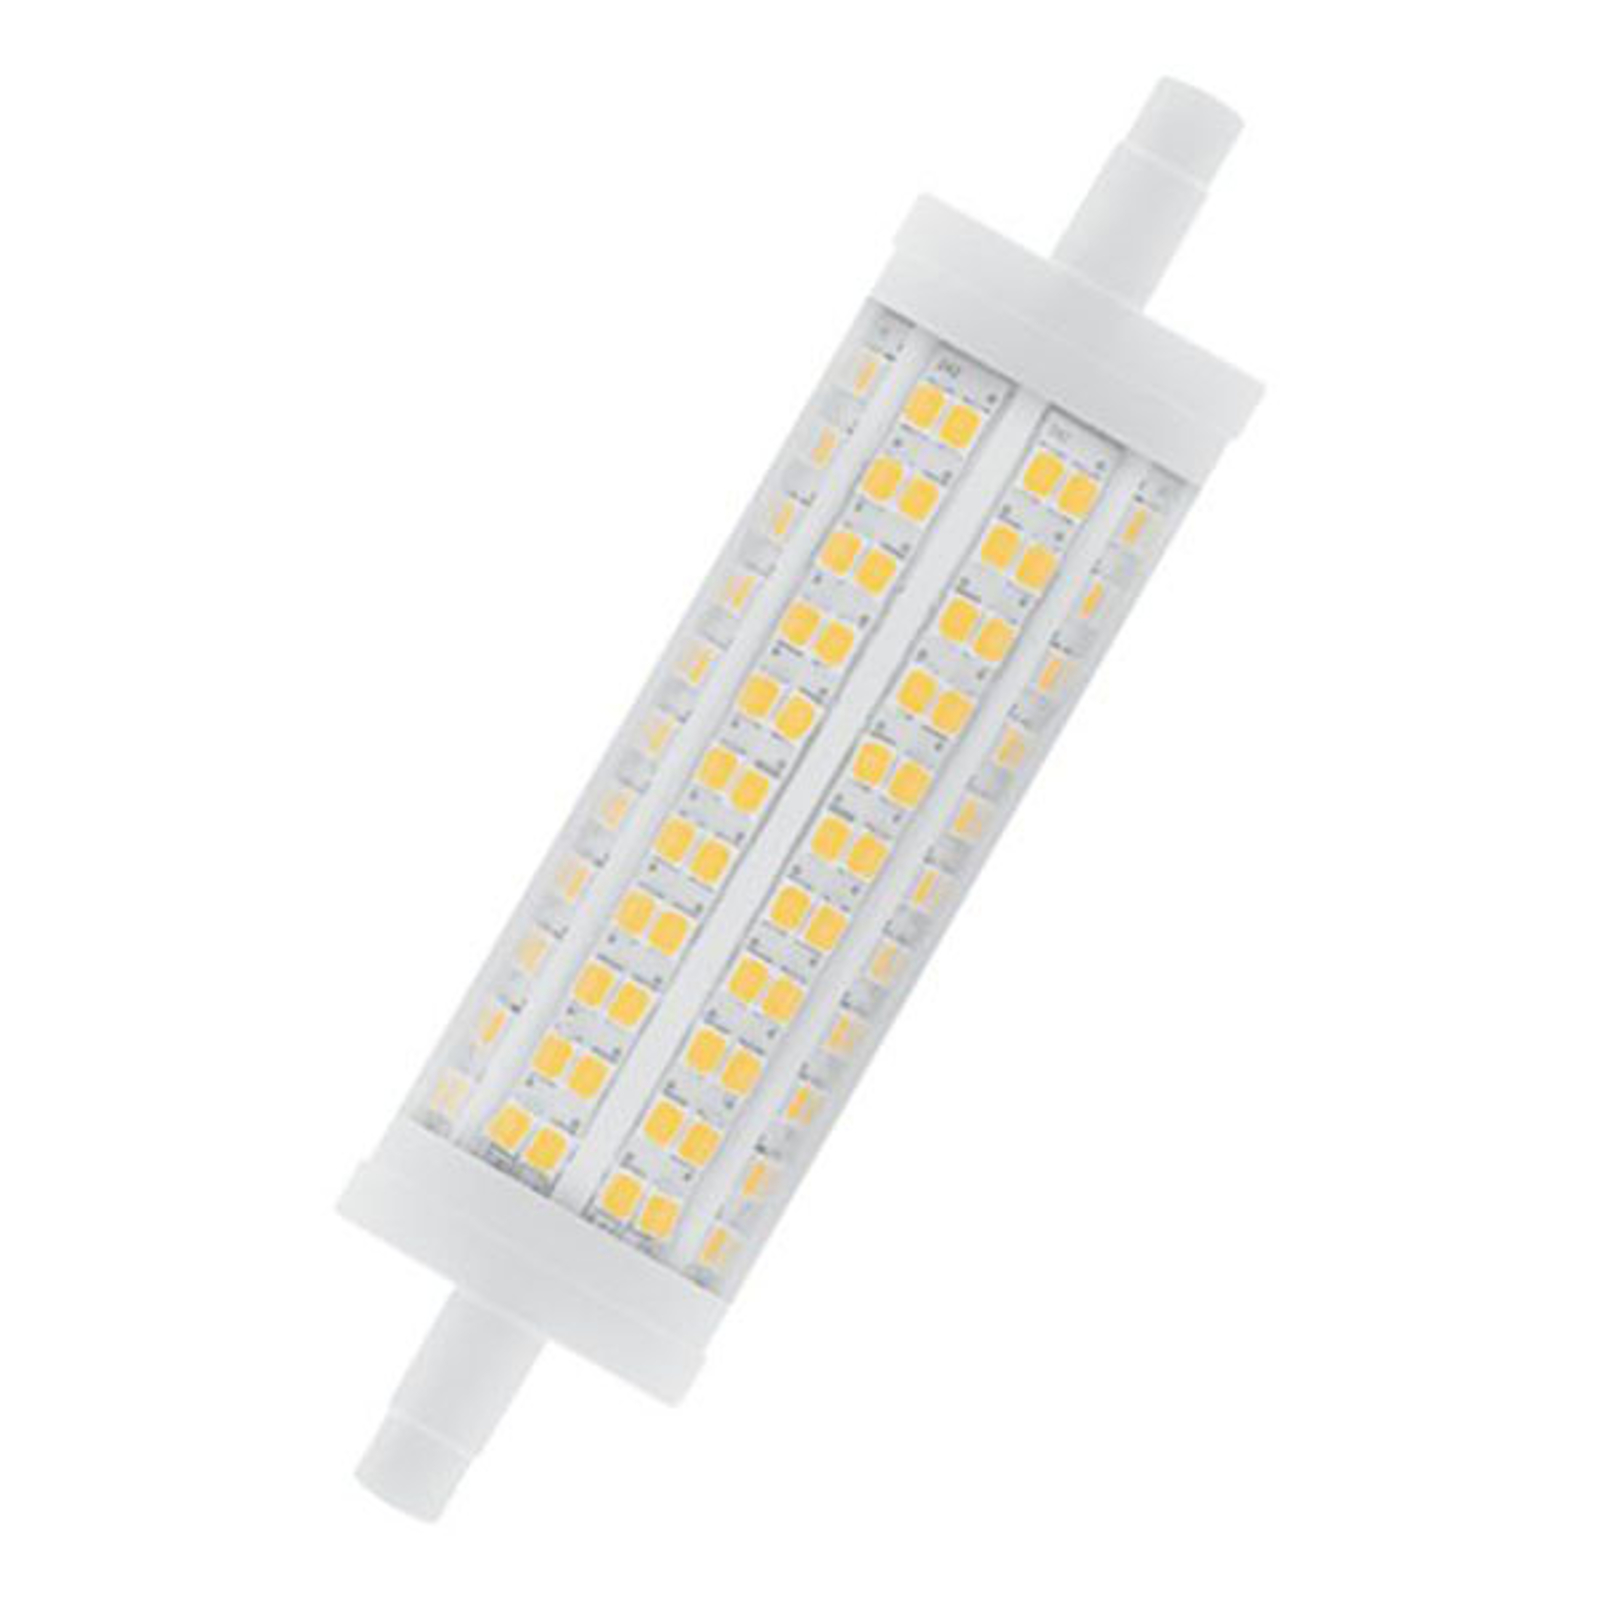 OSRAM ampoule LED R7s 17,5W 2700K dimmable